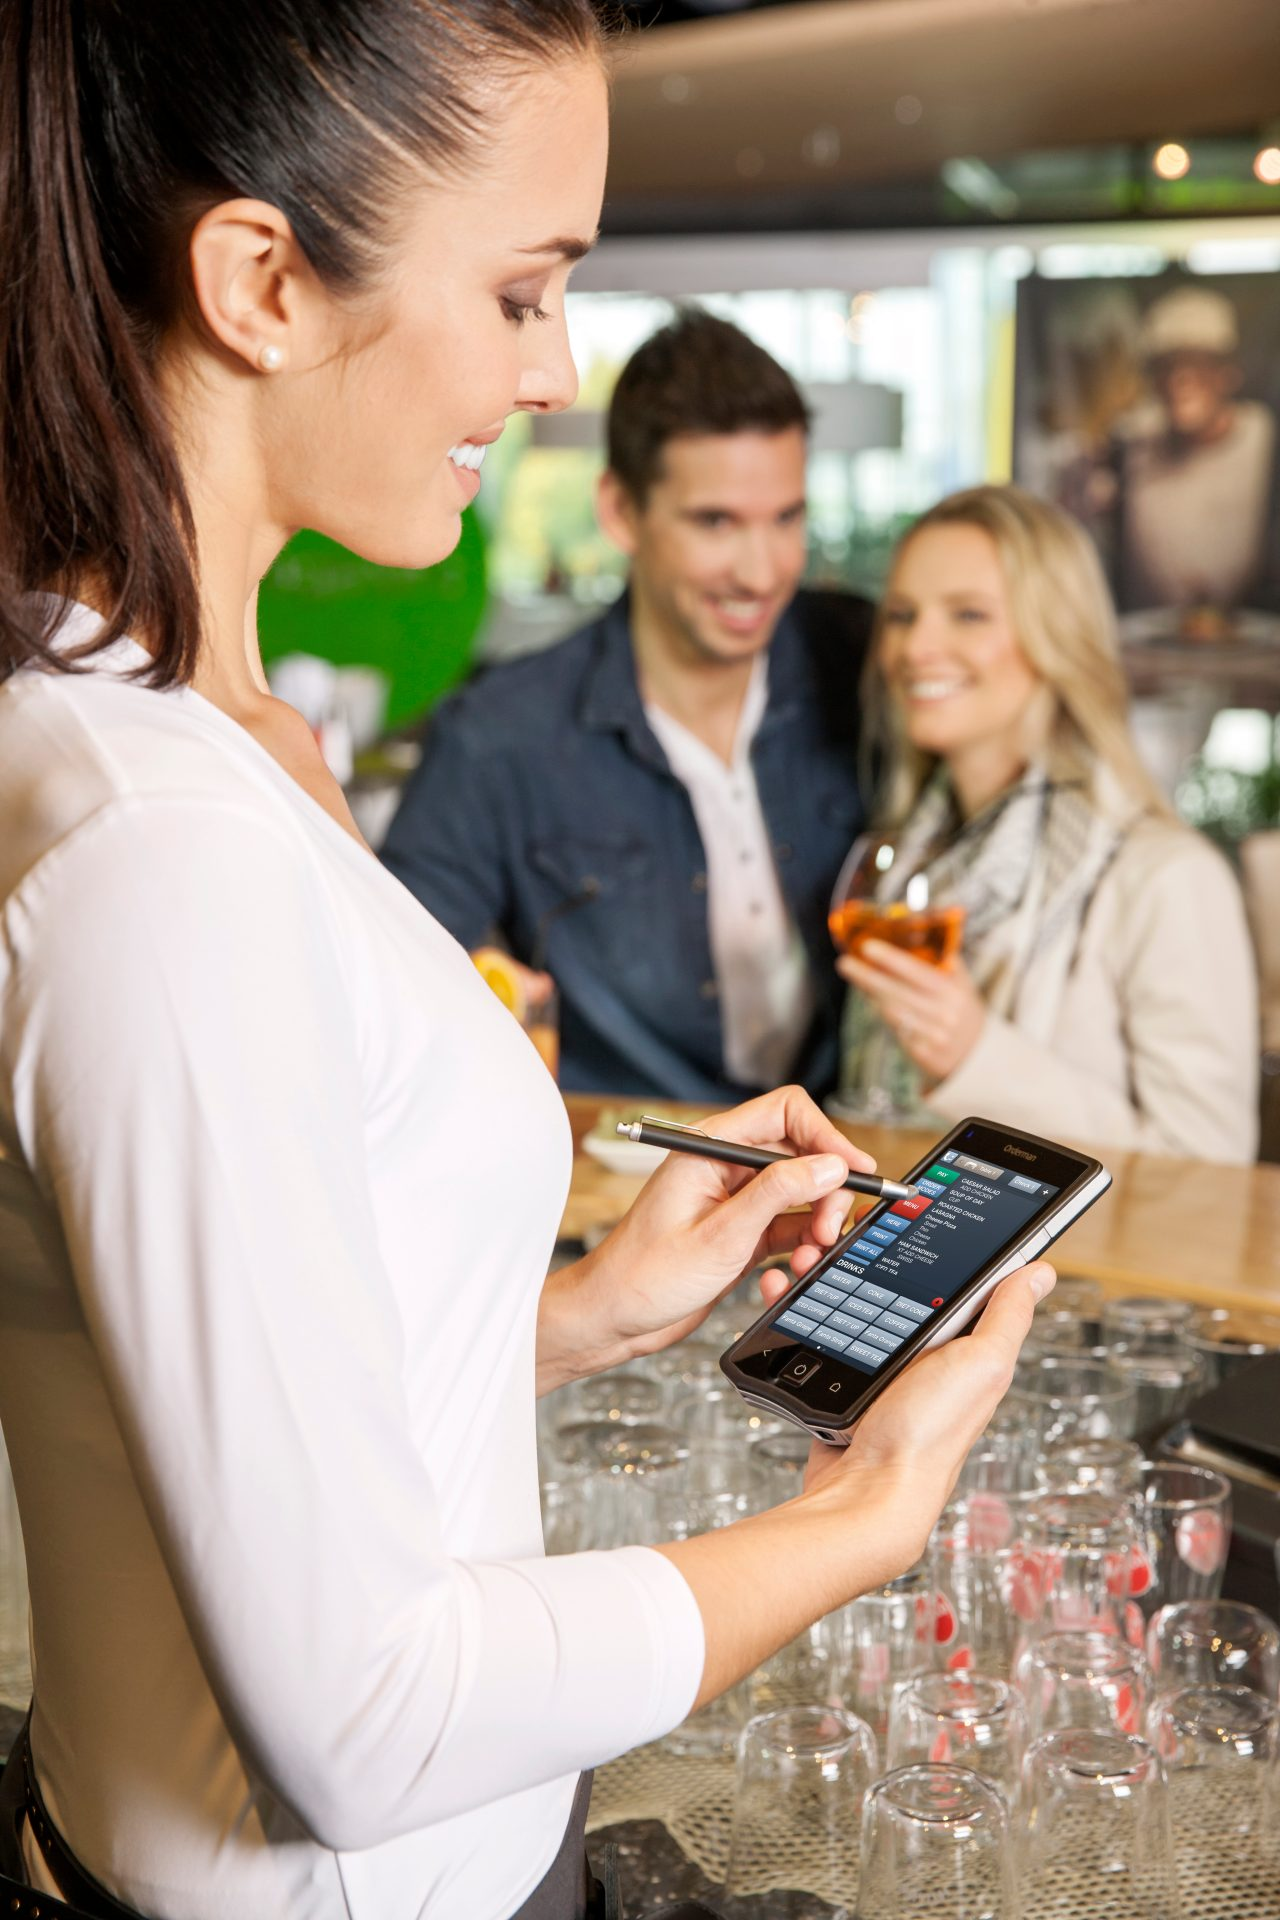 Female employee taking a couple's drink order on a mobile POS at the bar